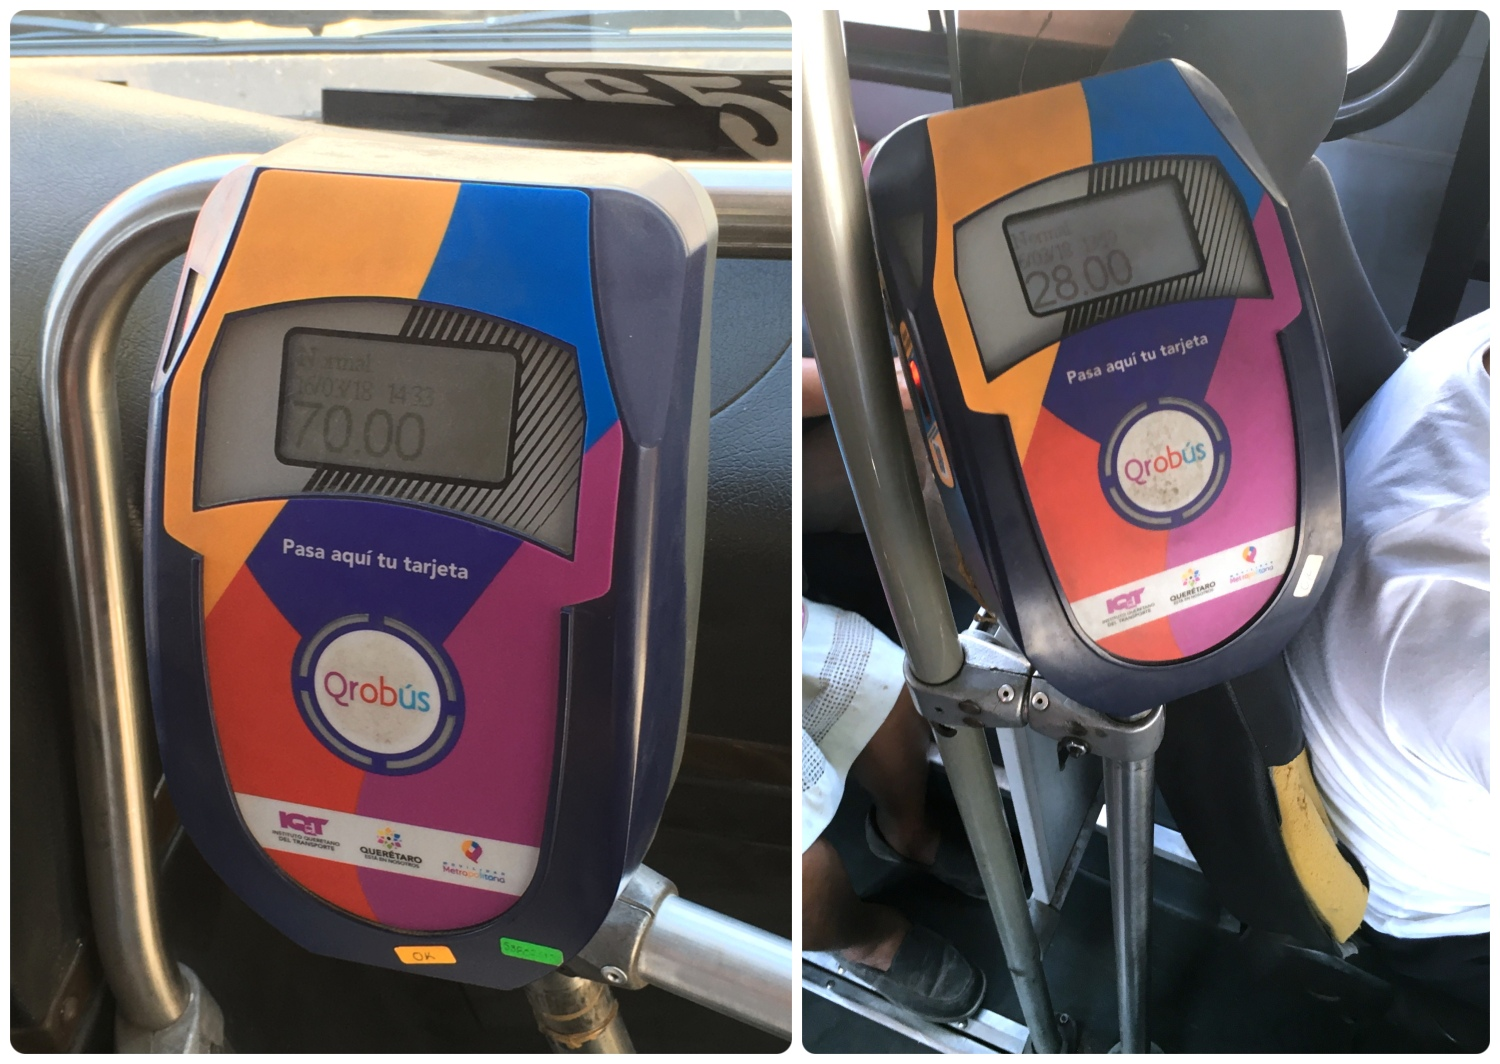 QROBus prepaid card RFID readers are located at the front of the bus, either next to the driver's seat or by the dashboard.